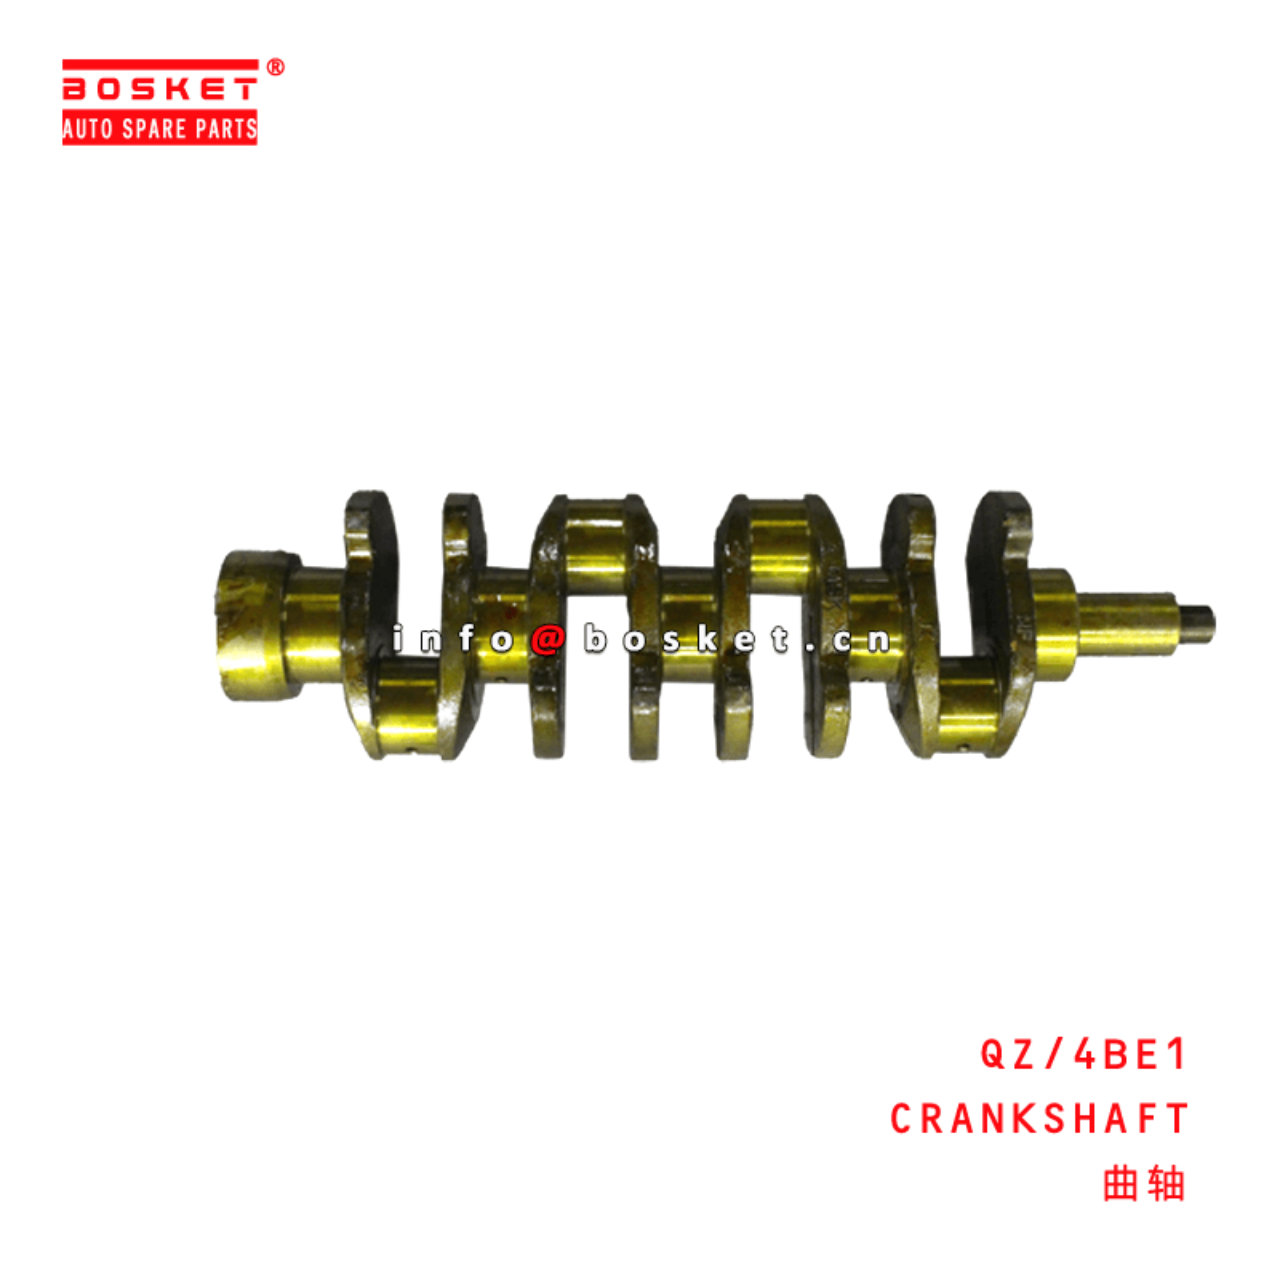 QZ/4BE1 Crankshaft Suitable for ISUZU 4BE1